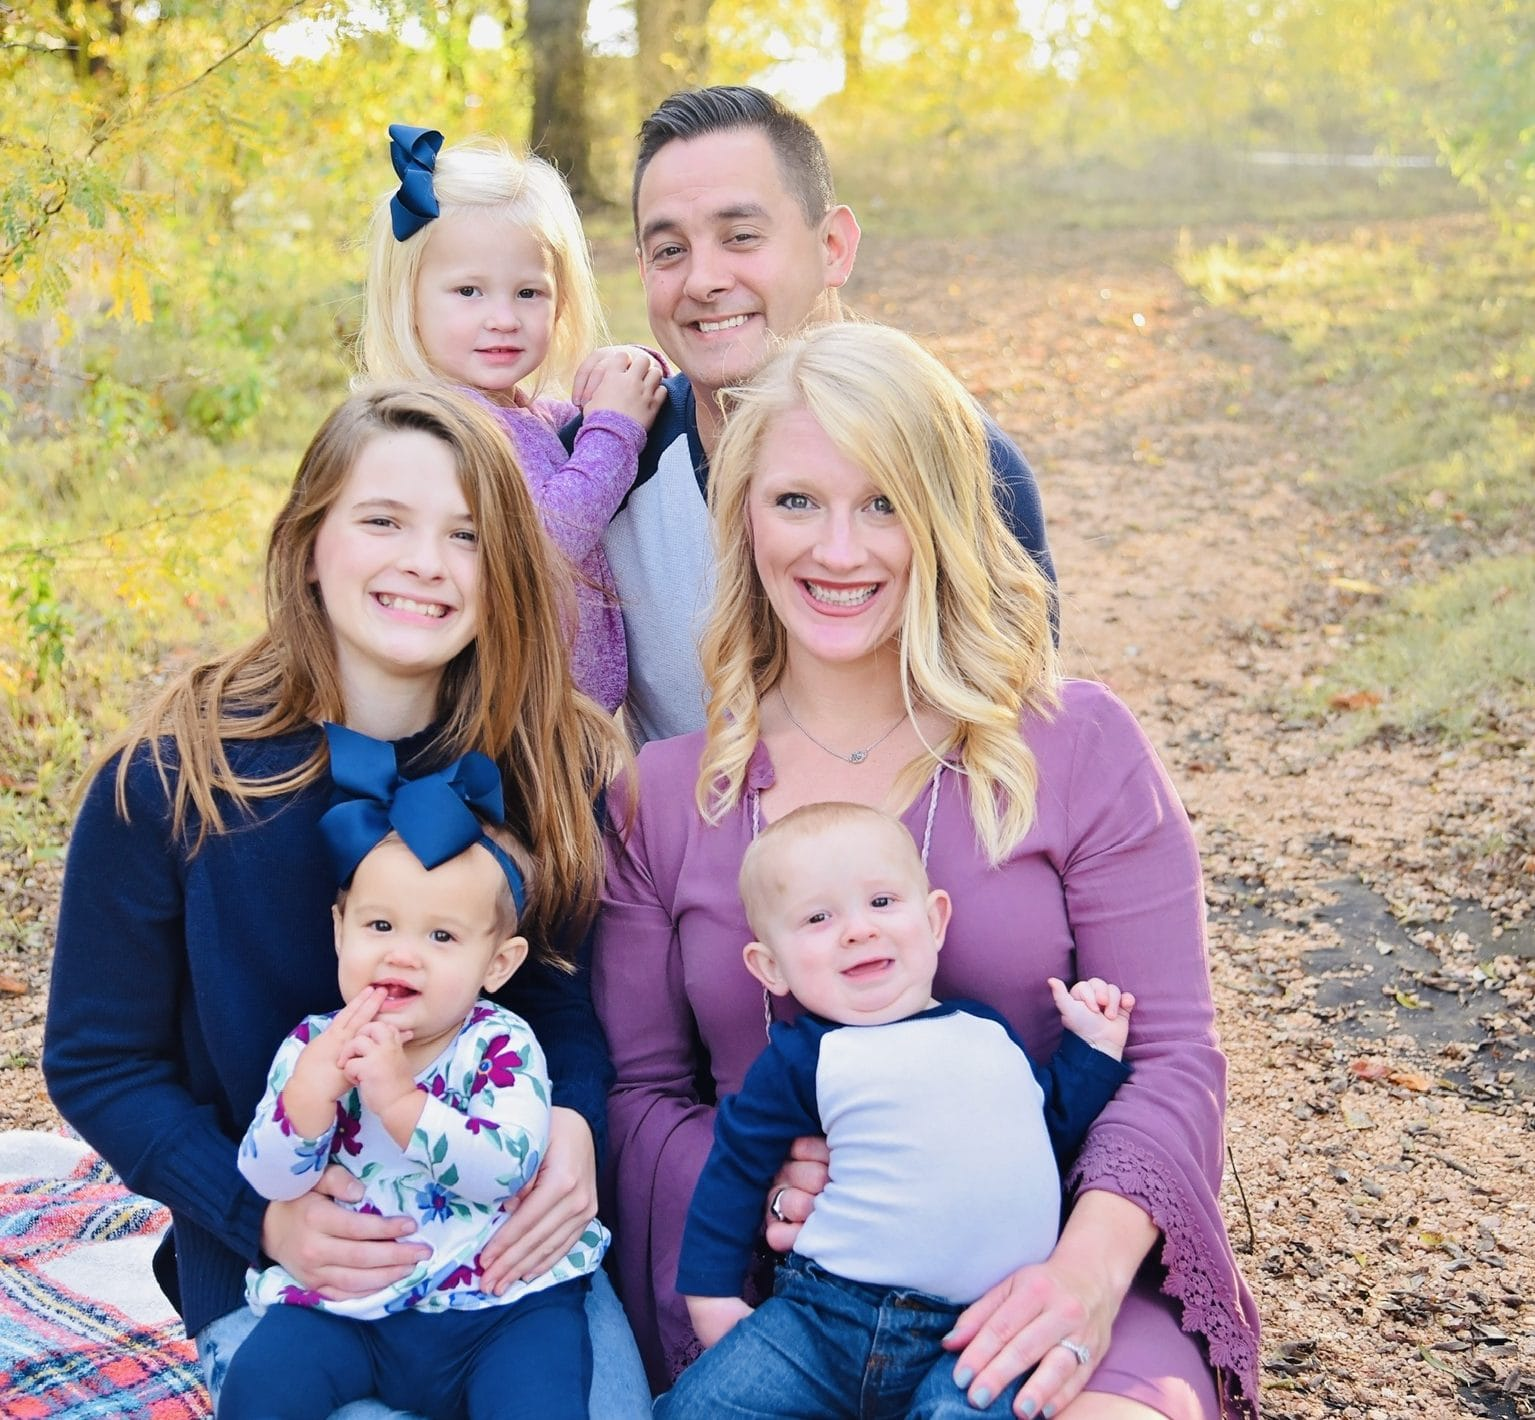 Alissa McBurney and family in Little Elm